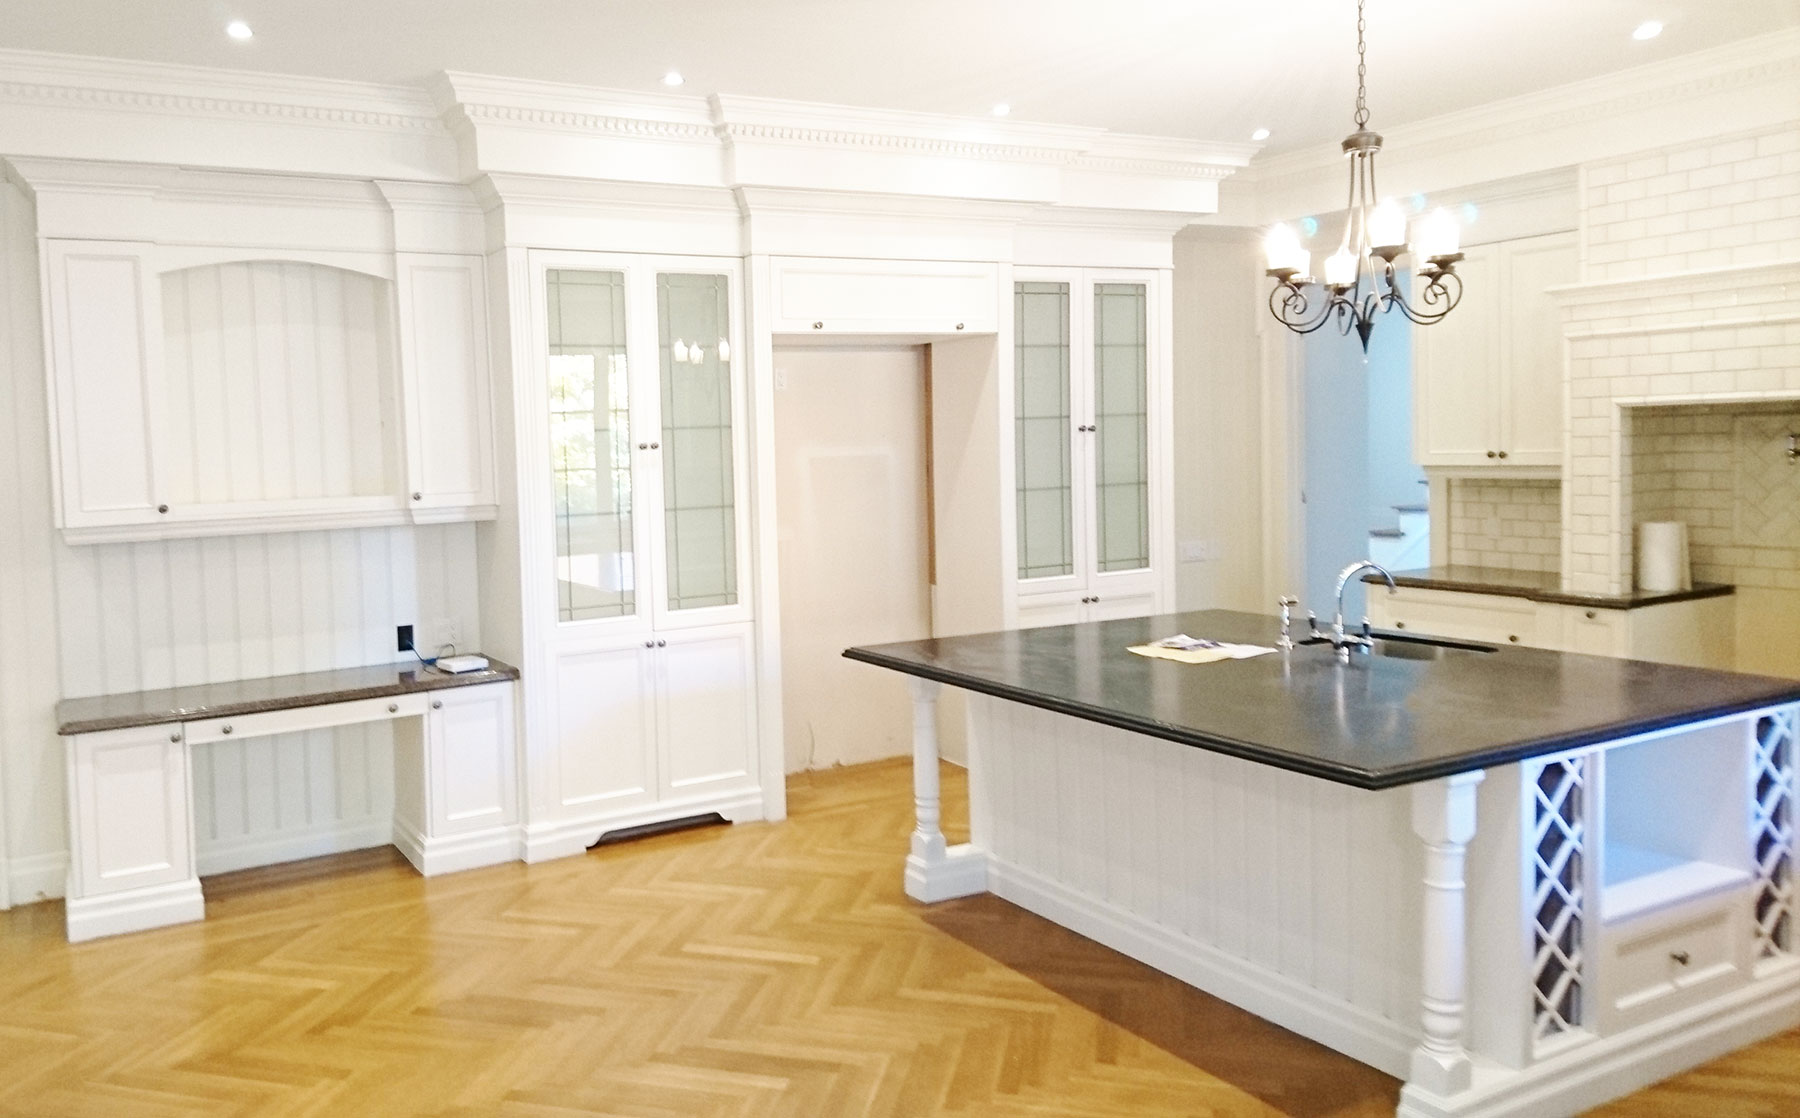 Norcliffe-Kitchen-Cabinet-Refinishing_after-b.jpg